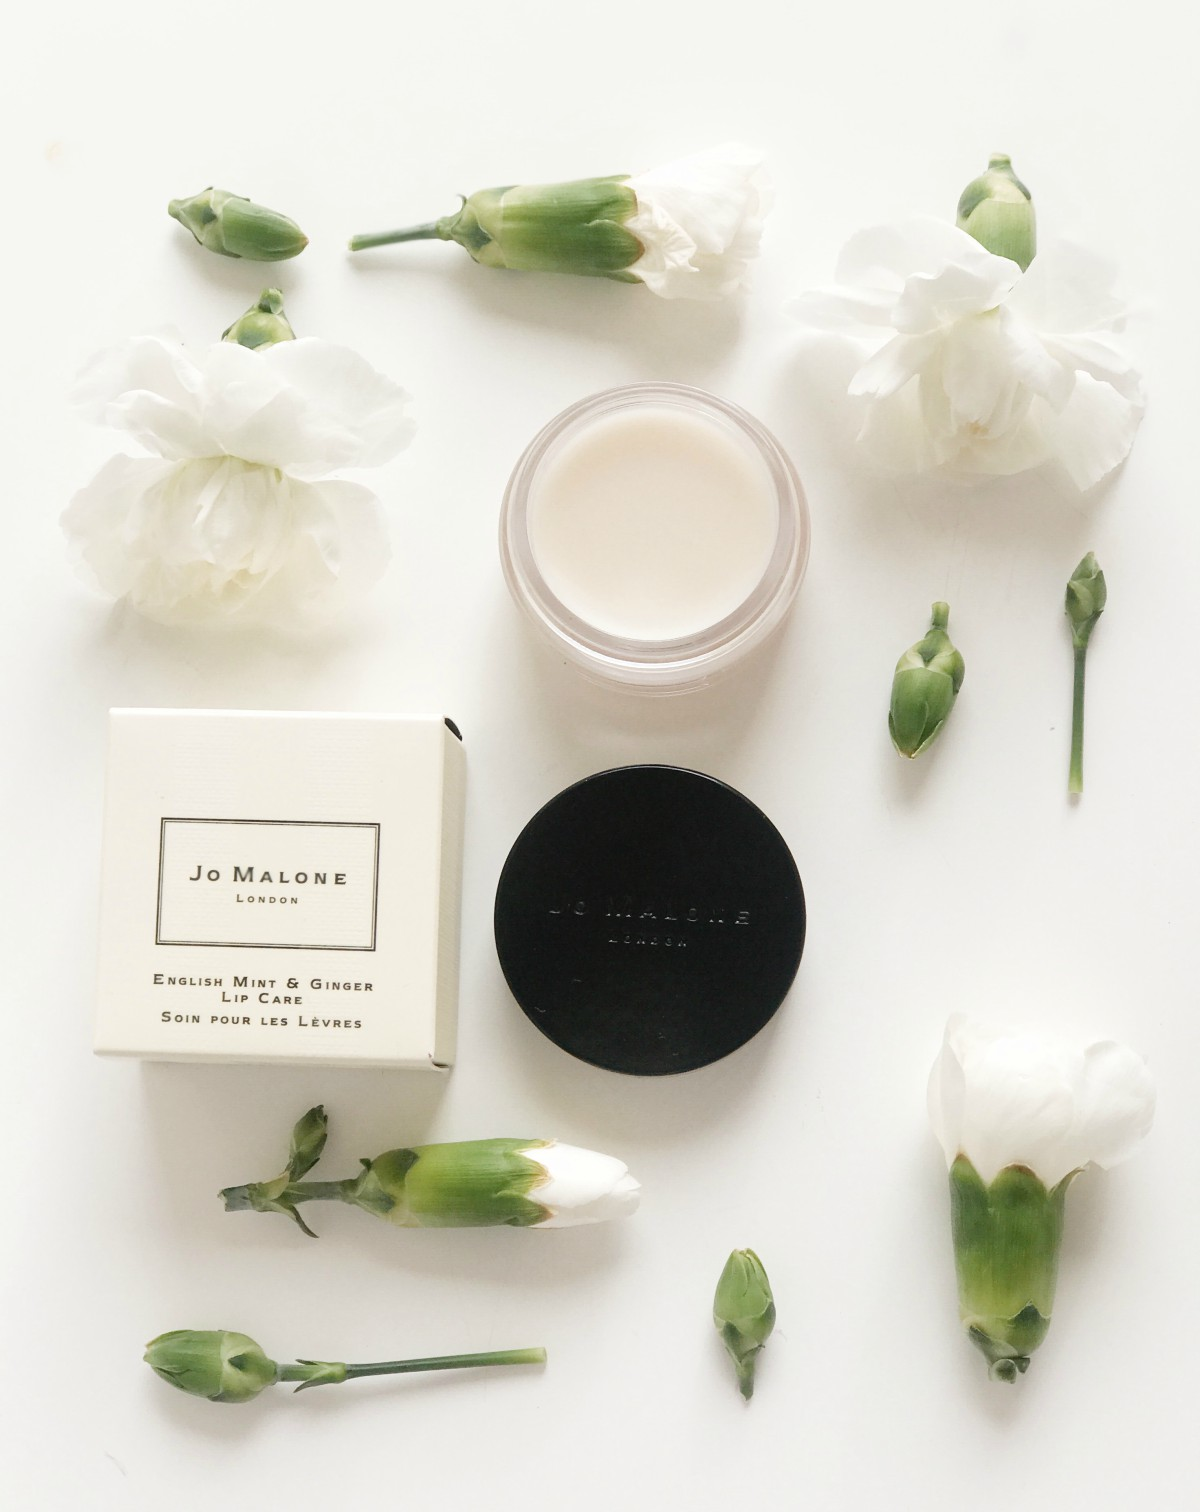 Jo Malone English Mint & Ginger Lip Care Review